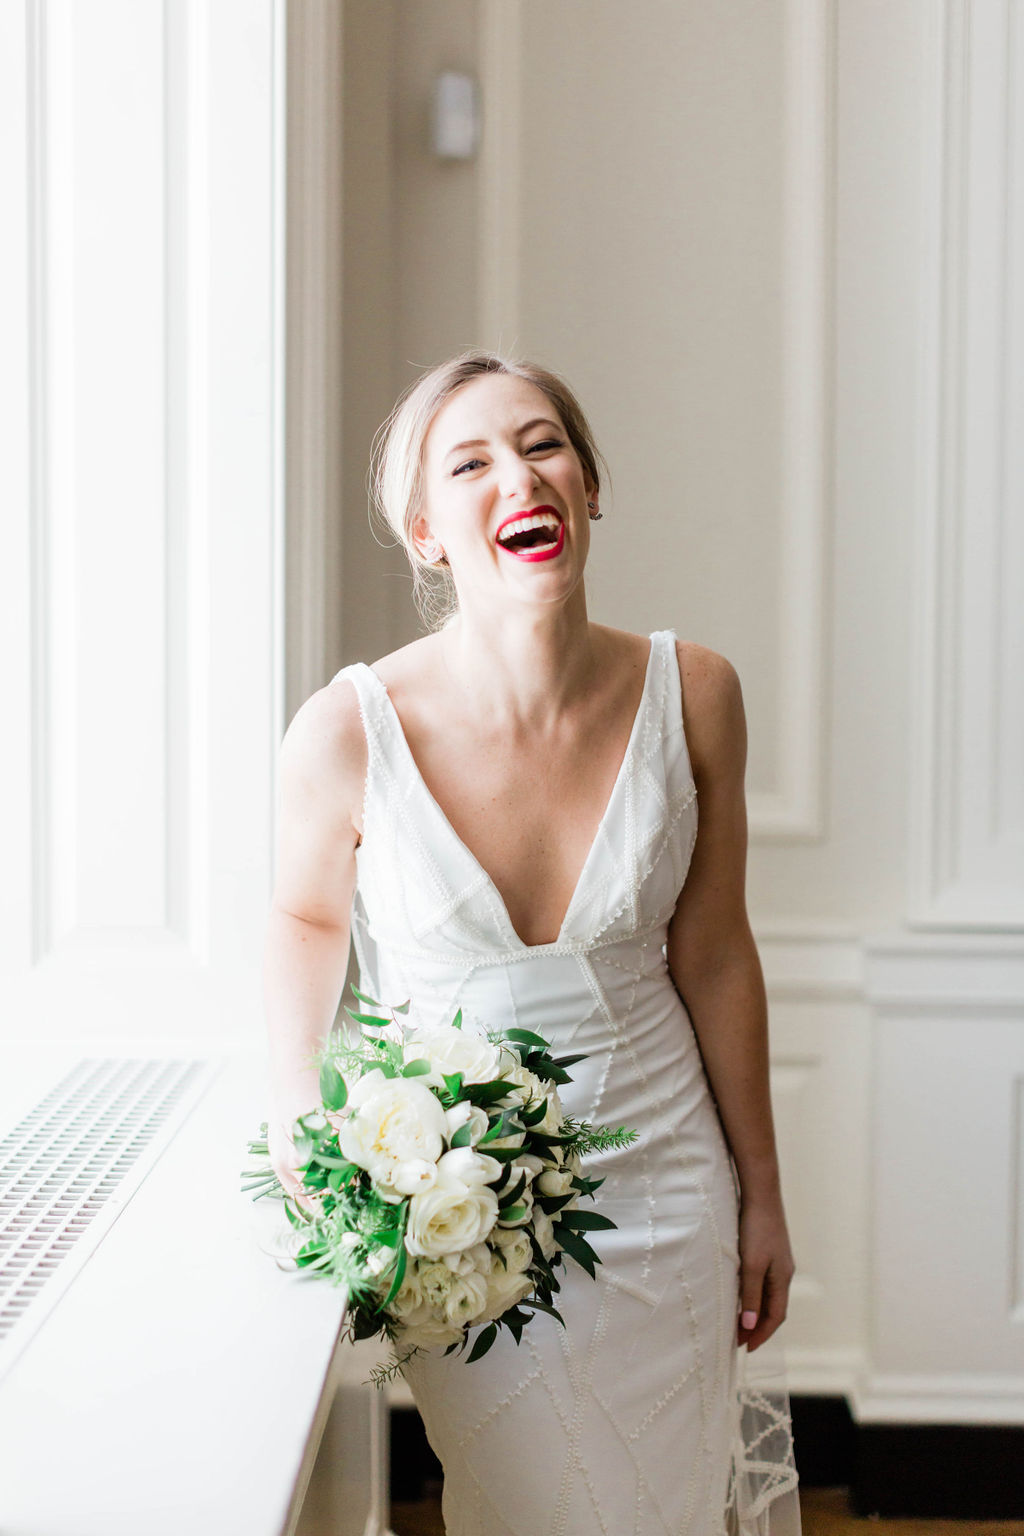 Bespoke Bridal | Varca Bridal | Chicago History Museum | Black and White Wedding | Black Tie Wedding | Your Day by MK | Chicago Wedding Planner |